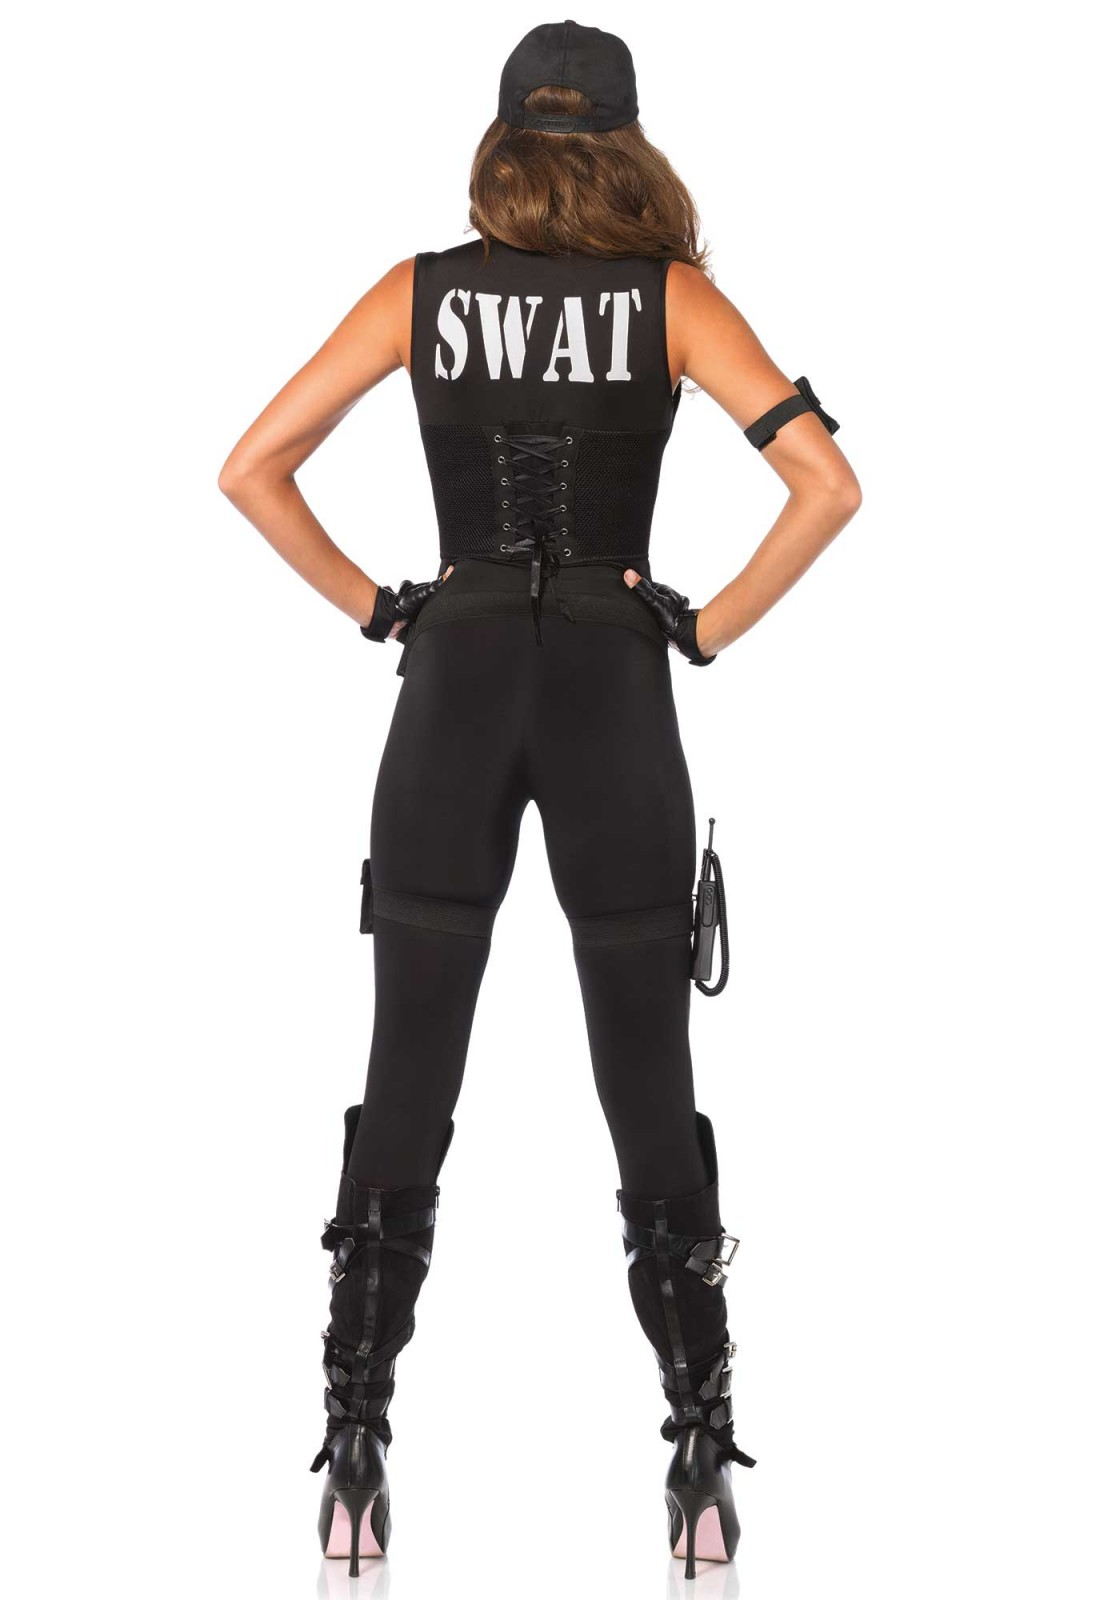 You are only dispatched in case of extreme crimes. Weapons are not necessary when you look this good. This 5PC swat costume includes a zip up catsuit with badge detail, attached multi strap faux vest with corset cincher back, pocket arm strap, utility garters with toy walkie talkie, belt and matching hat. Please take note that the gloves are not included.